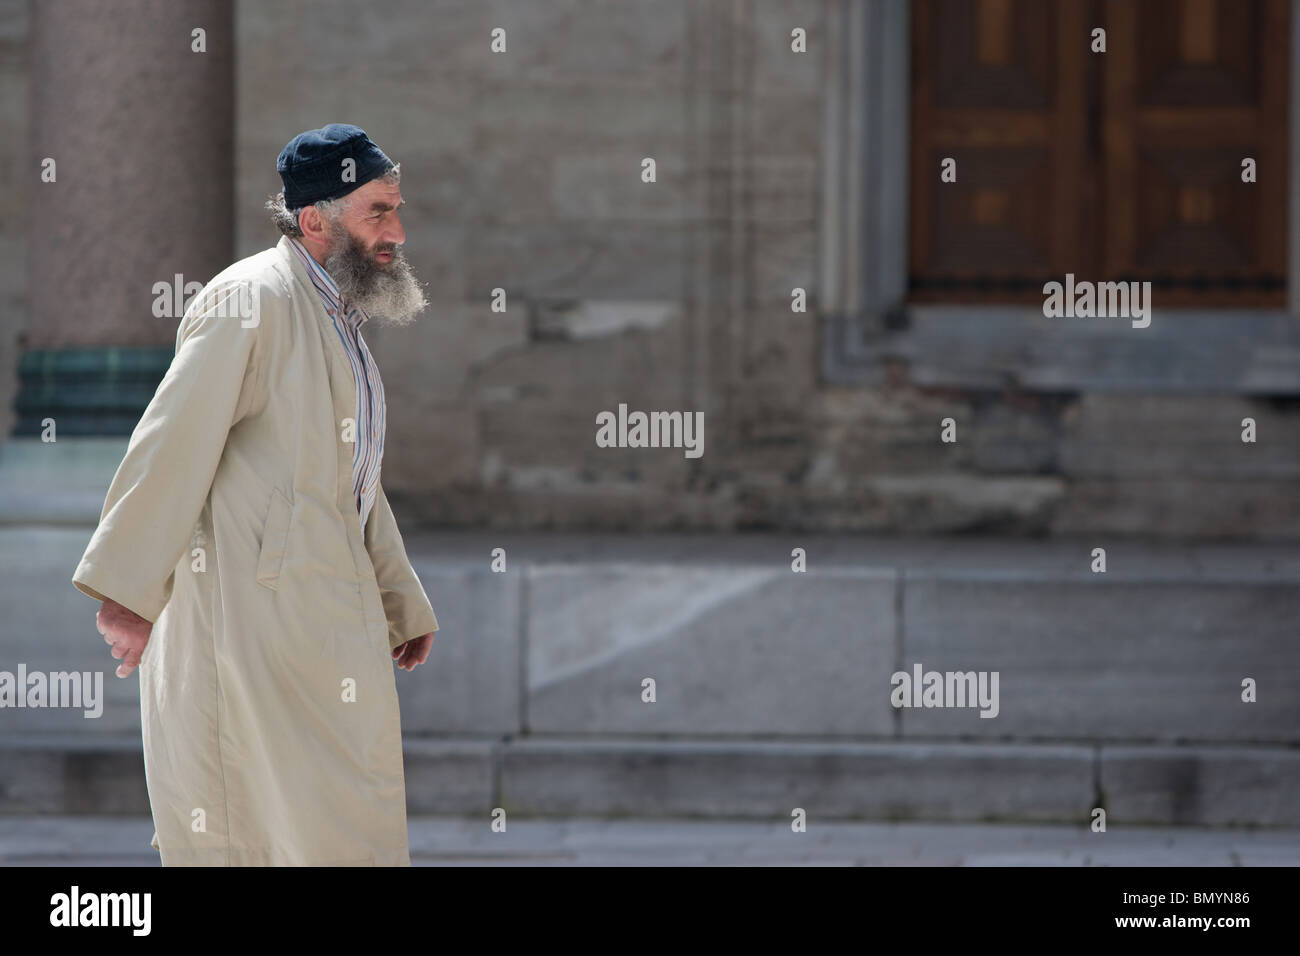 Old Muslim man with beard in mosque, Istanbul, Turkey - Stock Image